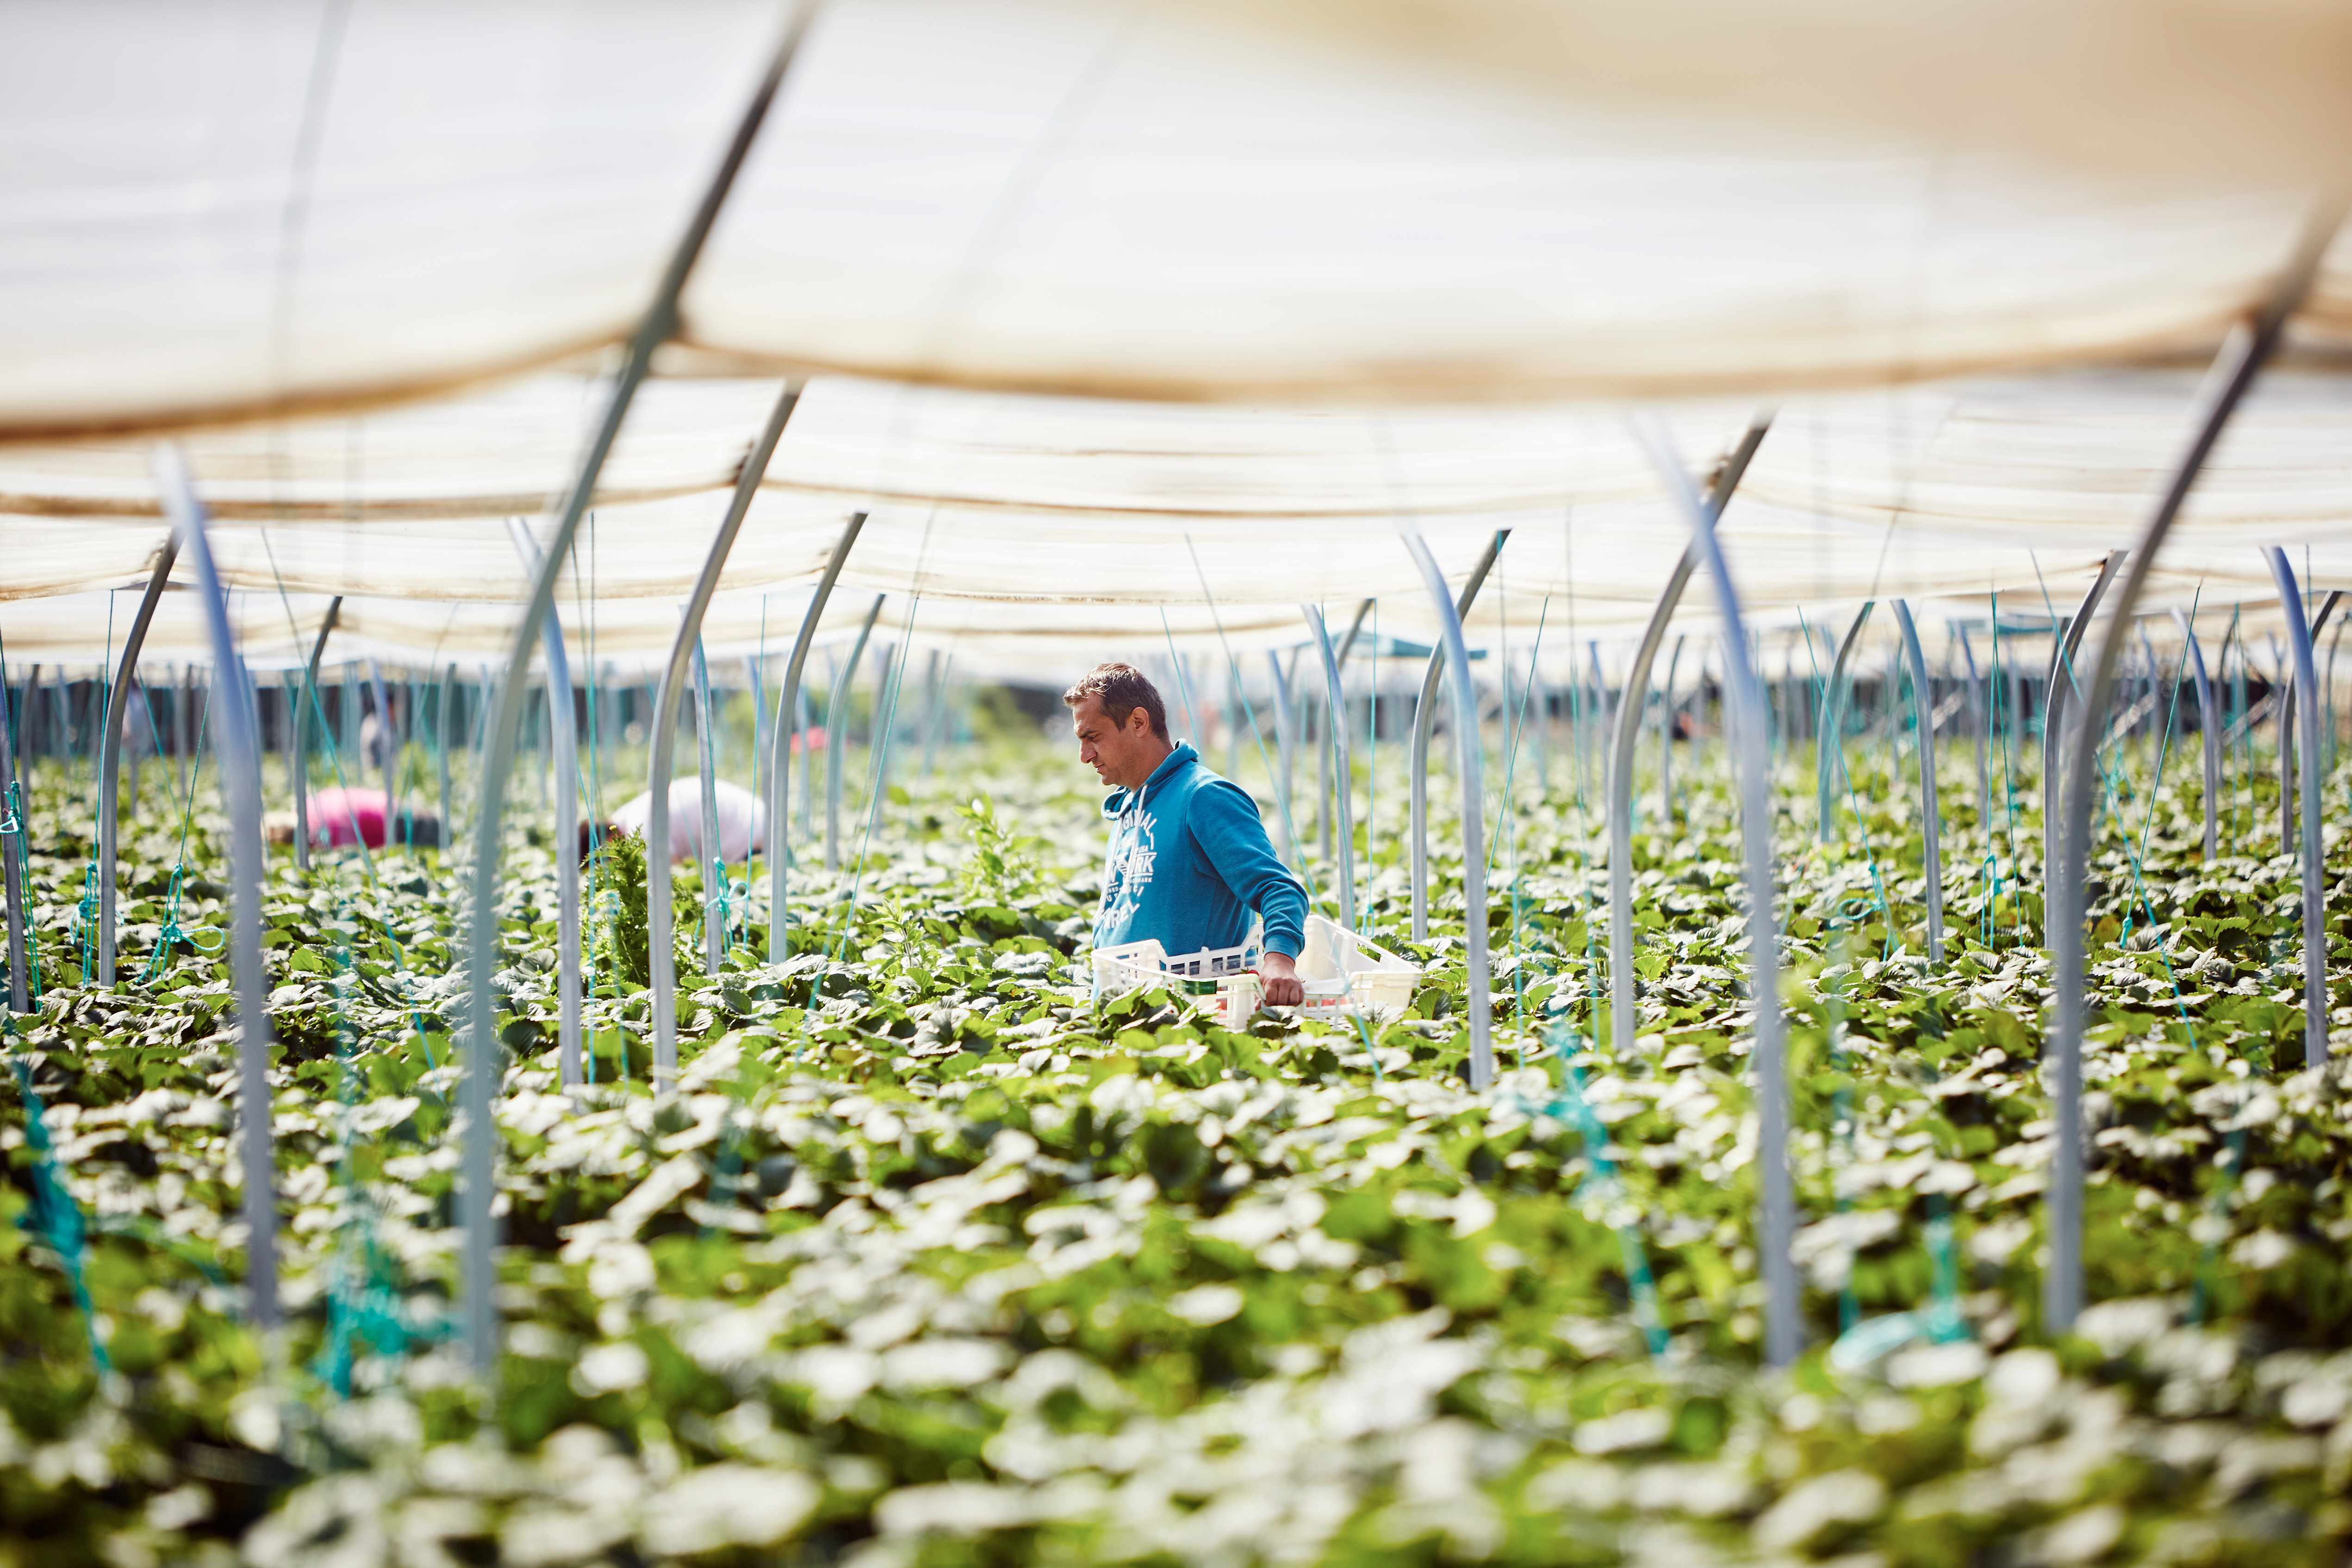 Fruit pickers working in intensive fruit farming environment harvest strawberries from poly tunnels in summer sunshine.